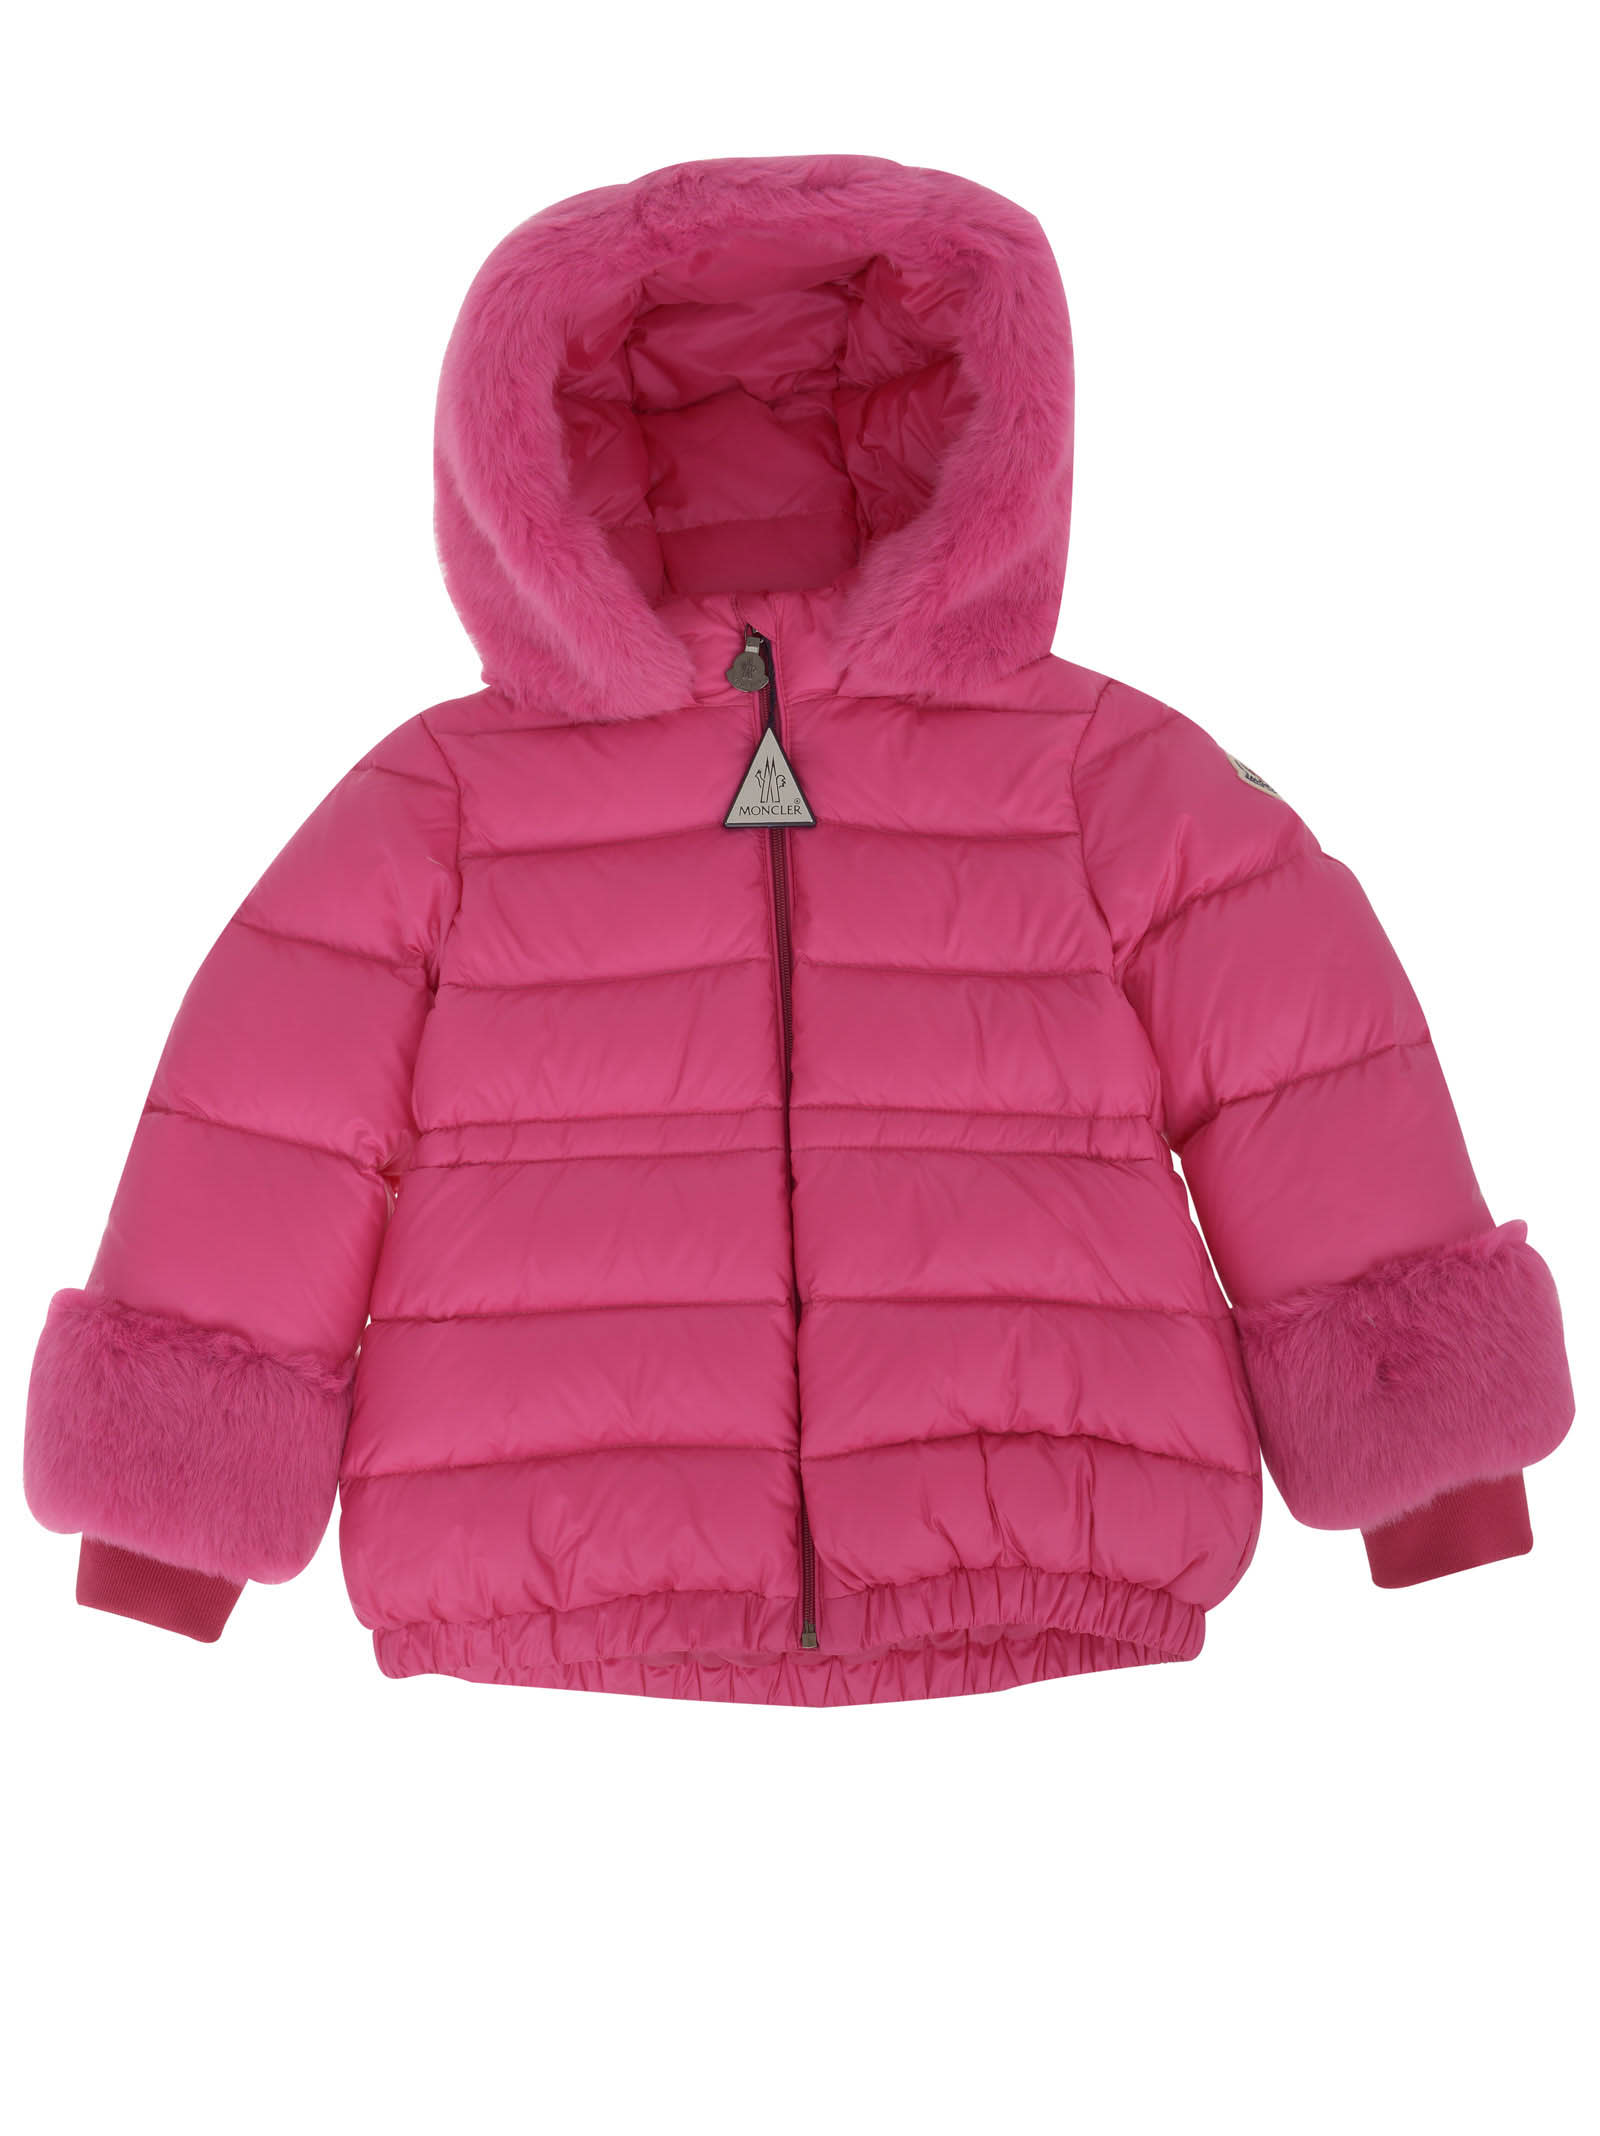 Moncler Babies' Jacket  Enfant In Pink